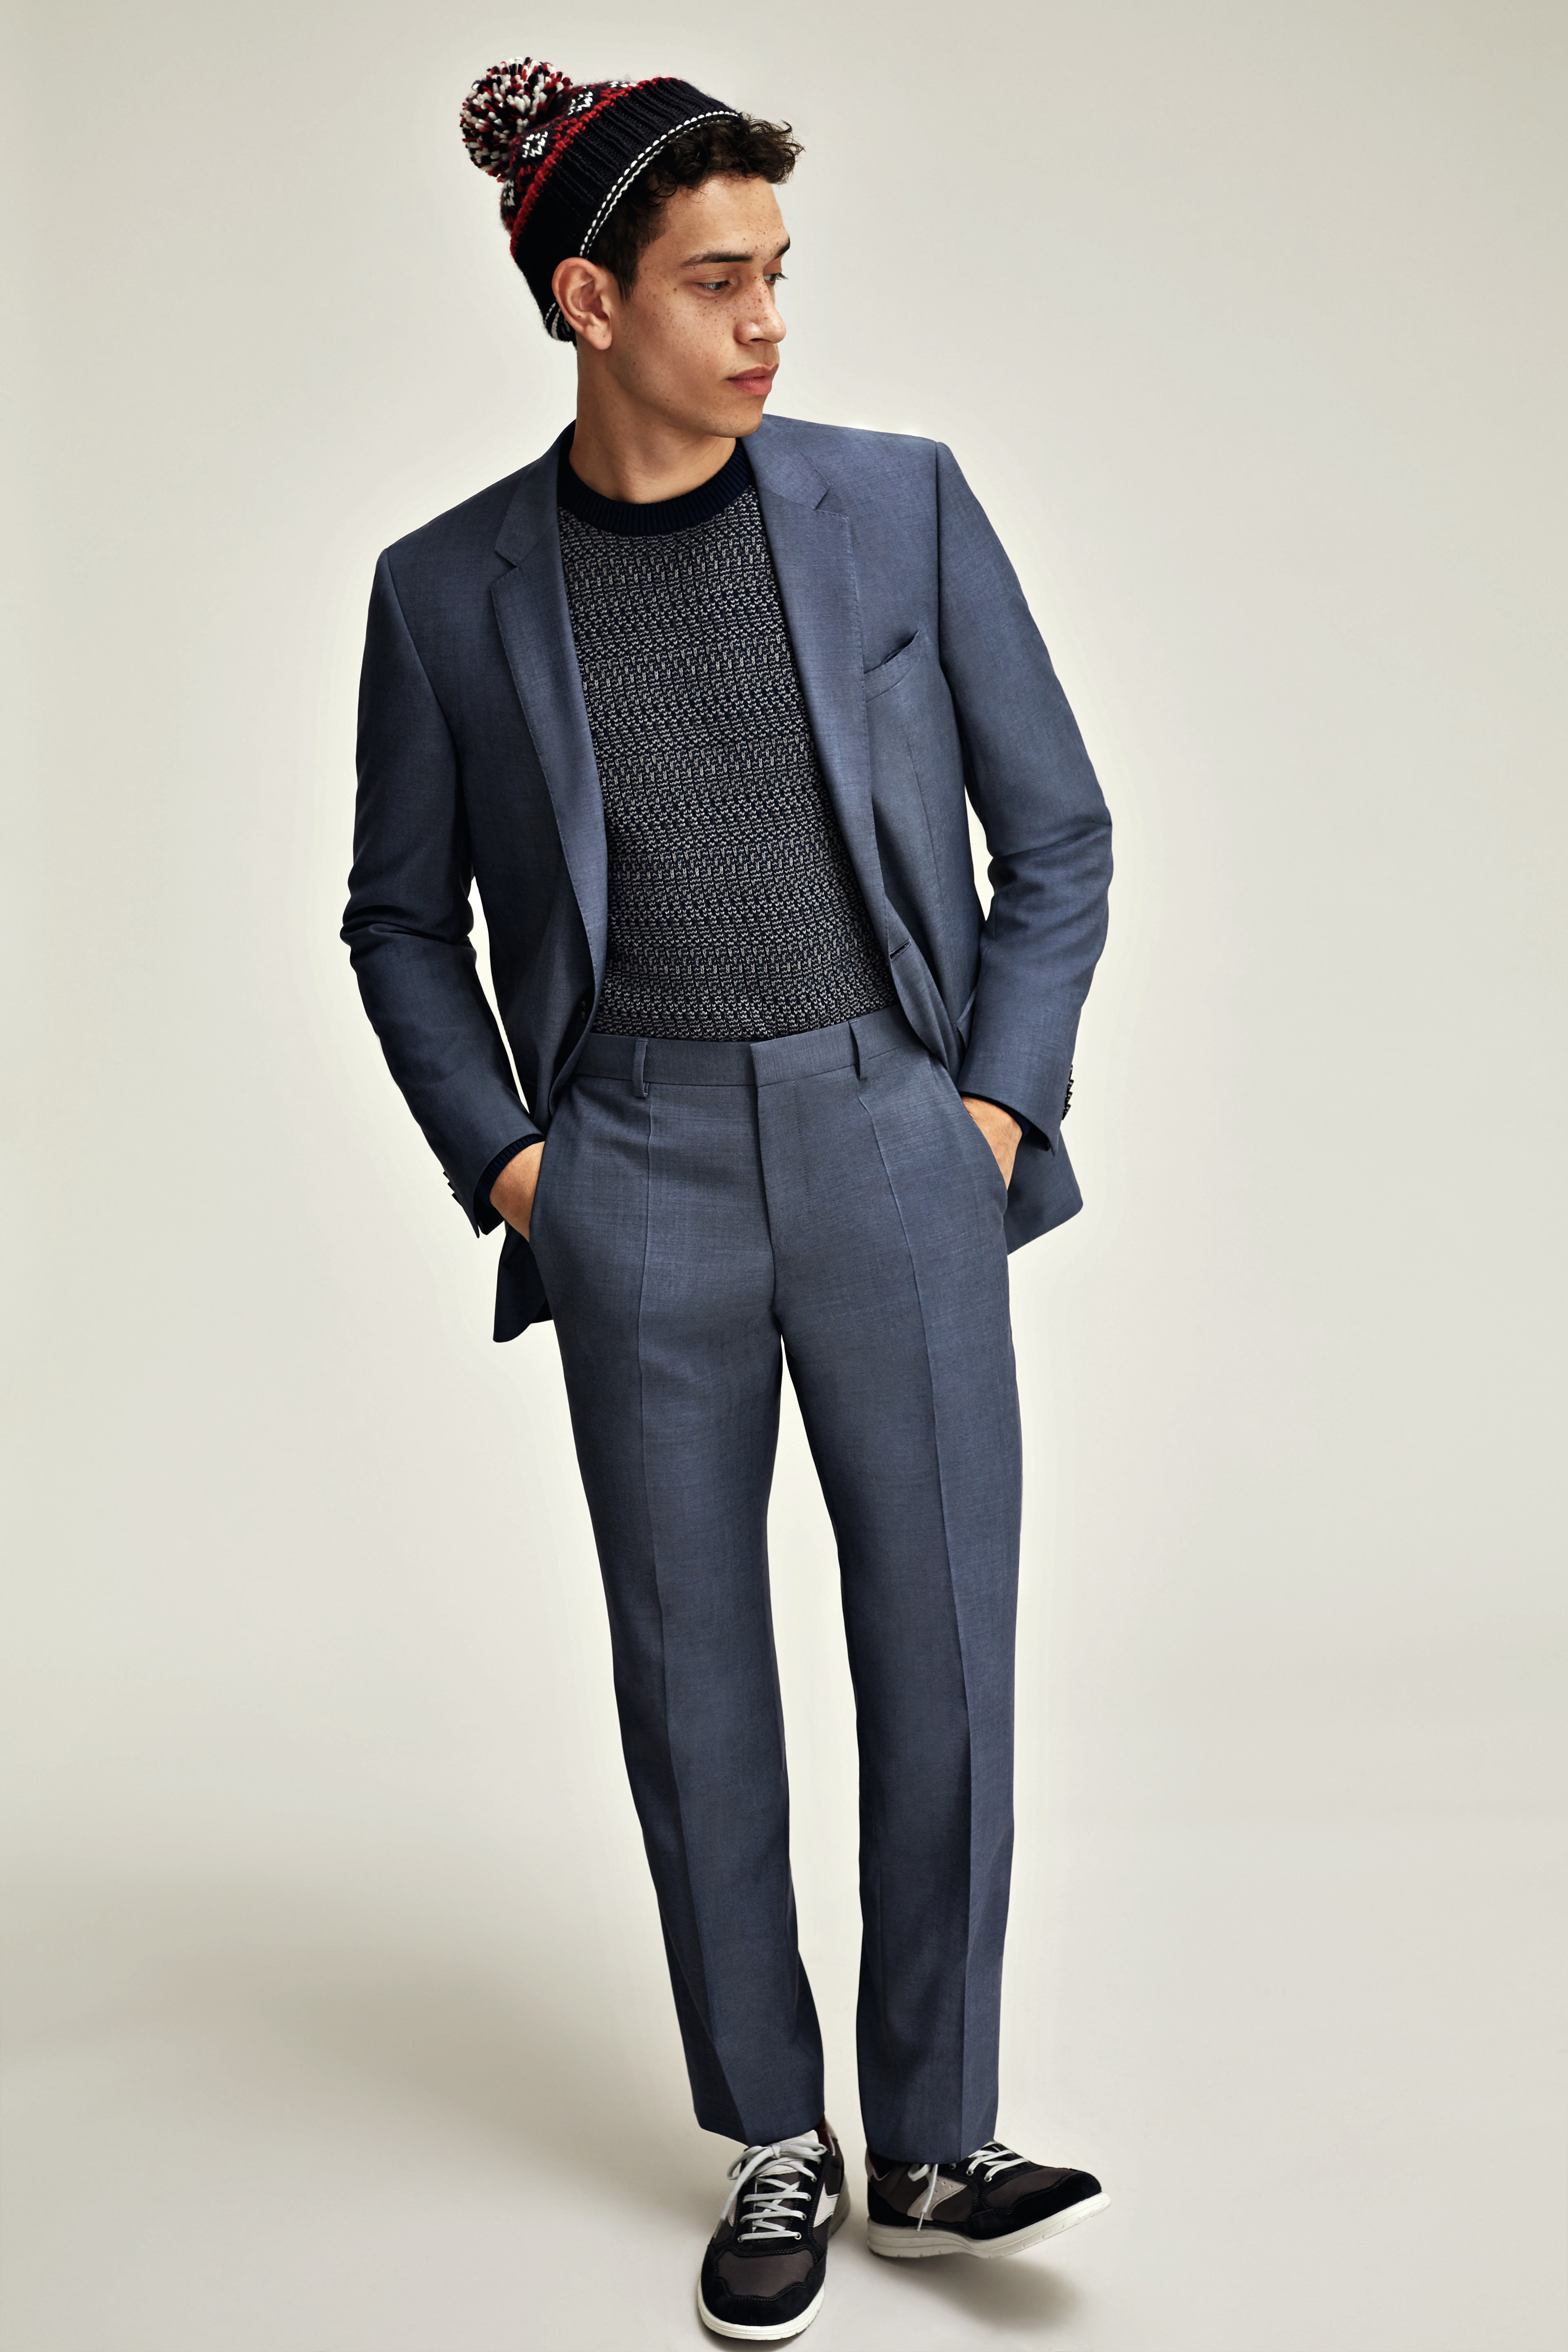 casual business looks photo - 1